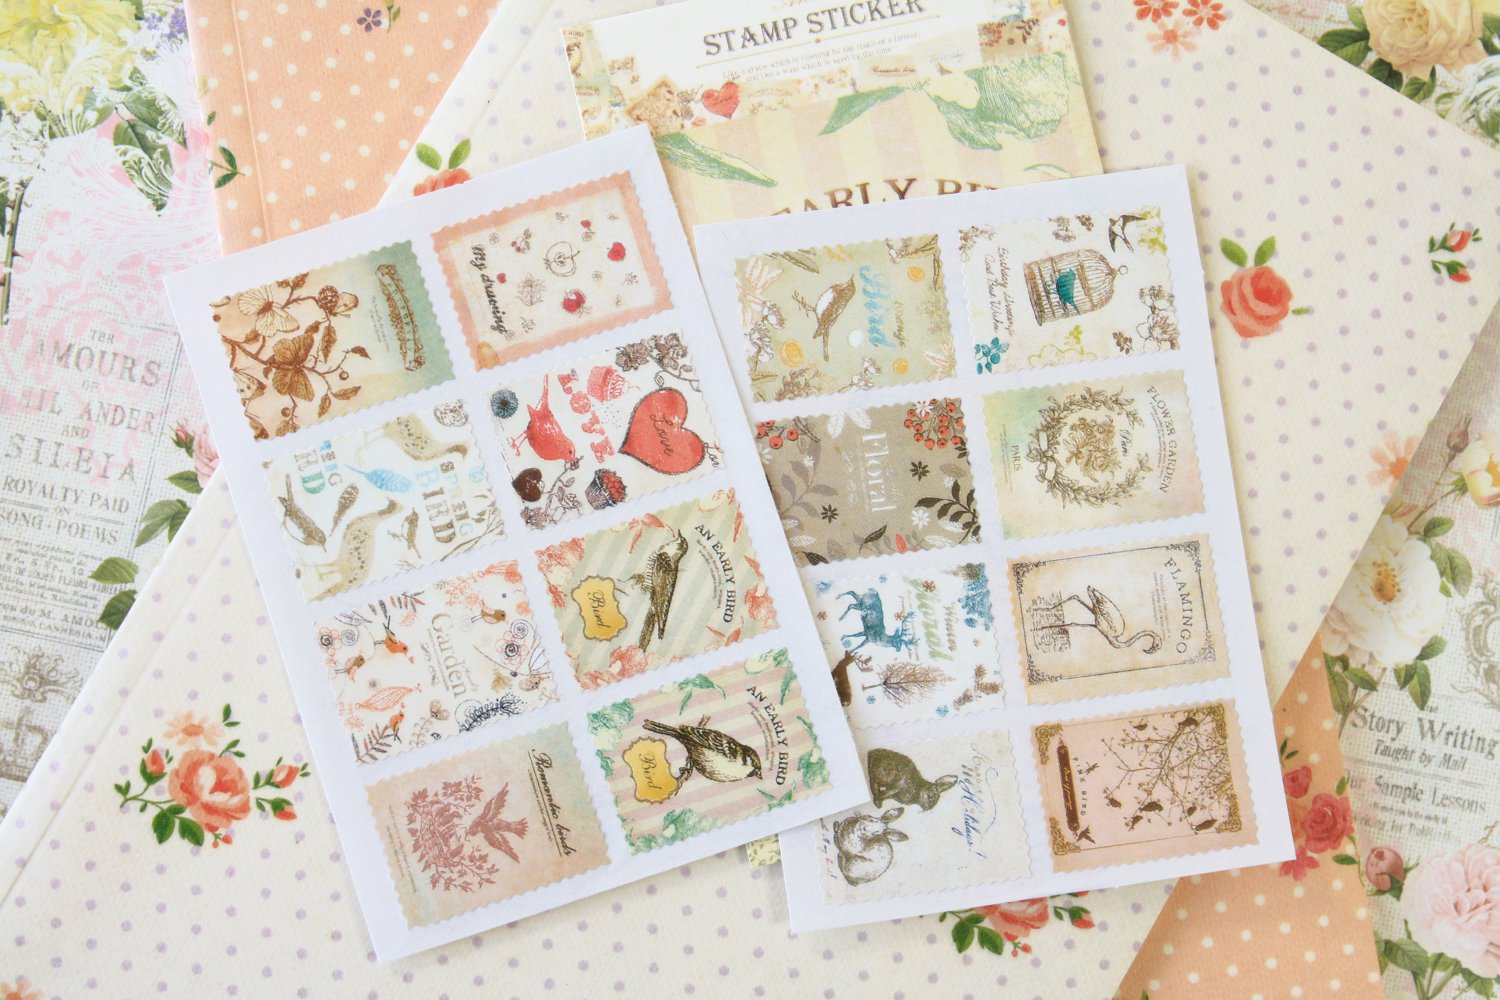 08 Natural Ancien cartoon stamp stickers